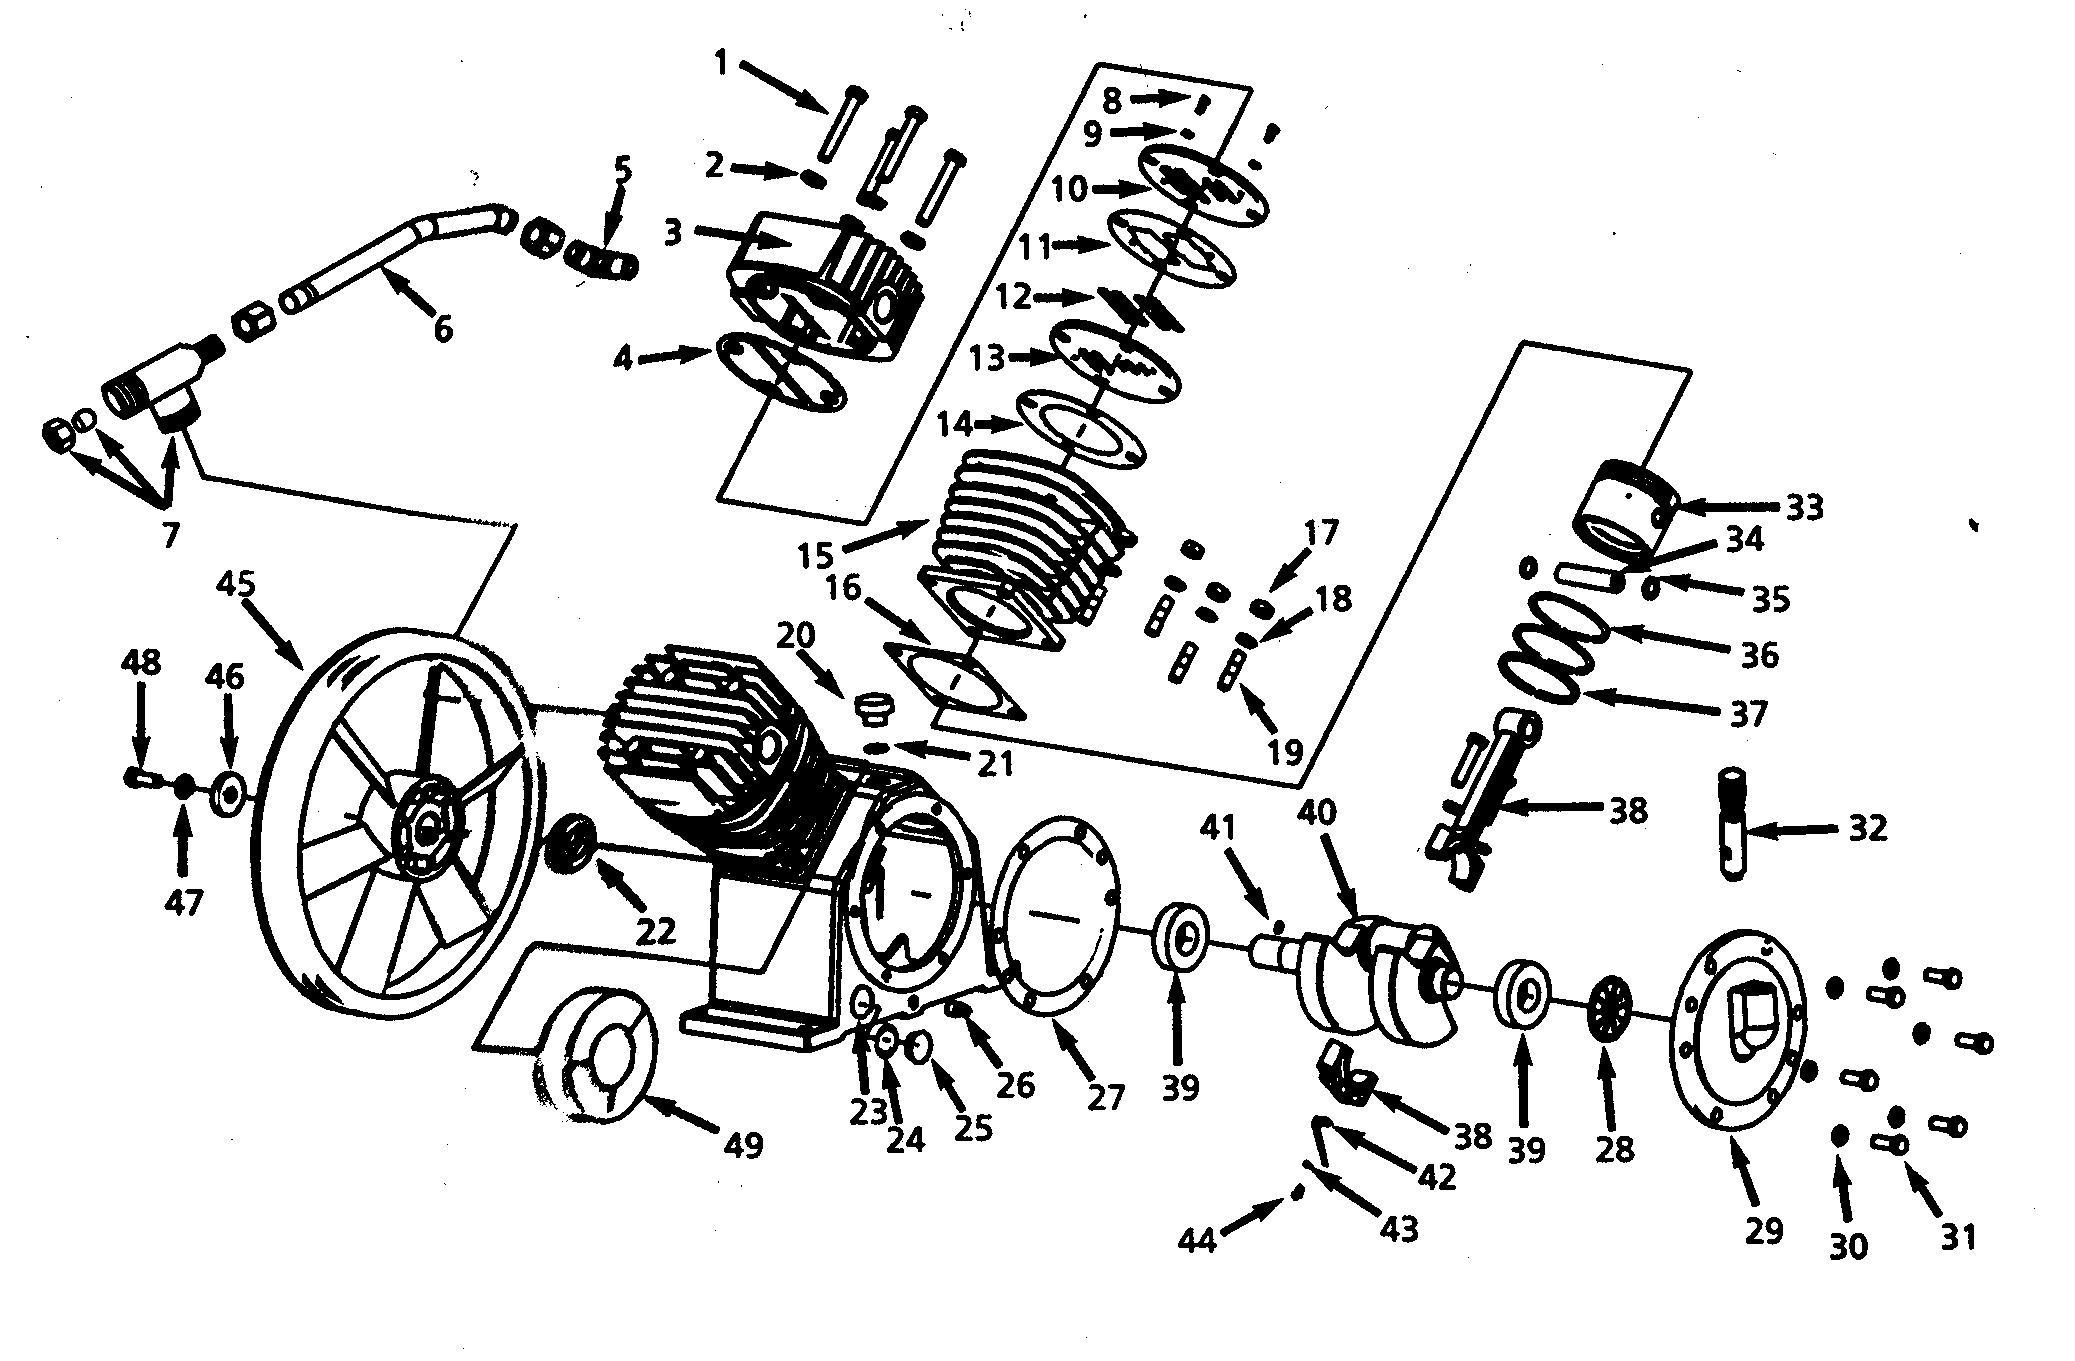 Wiring Diagram For Campbell Hausfeld Compressor